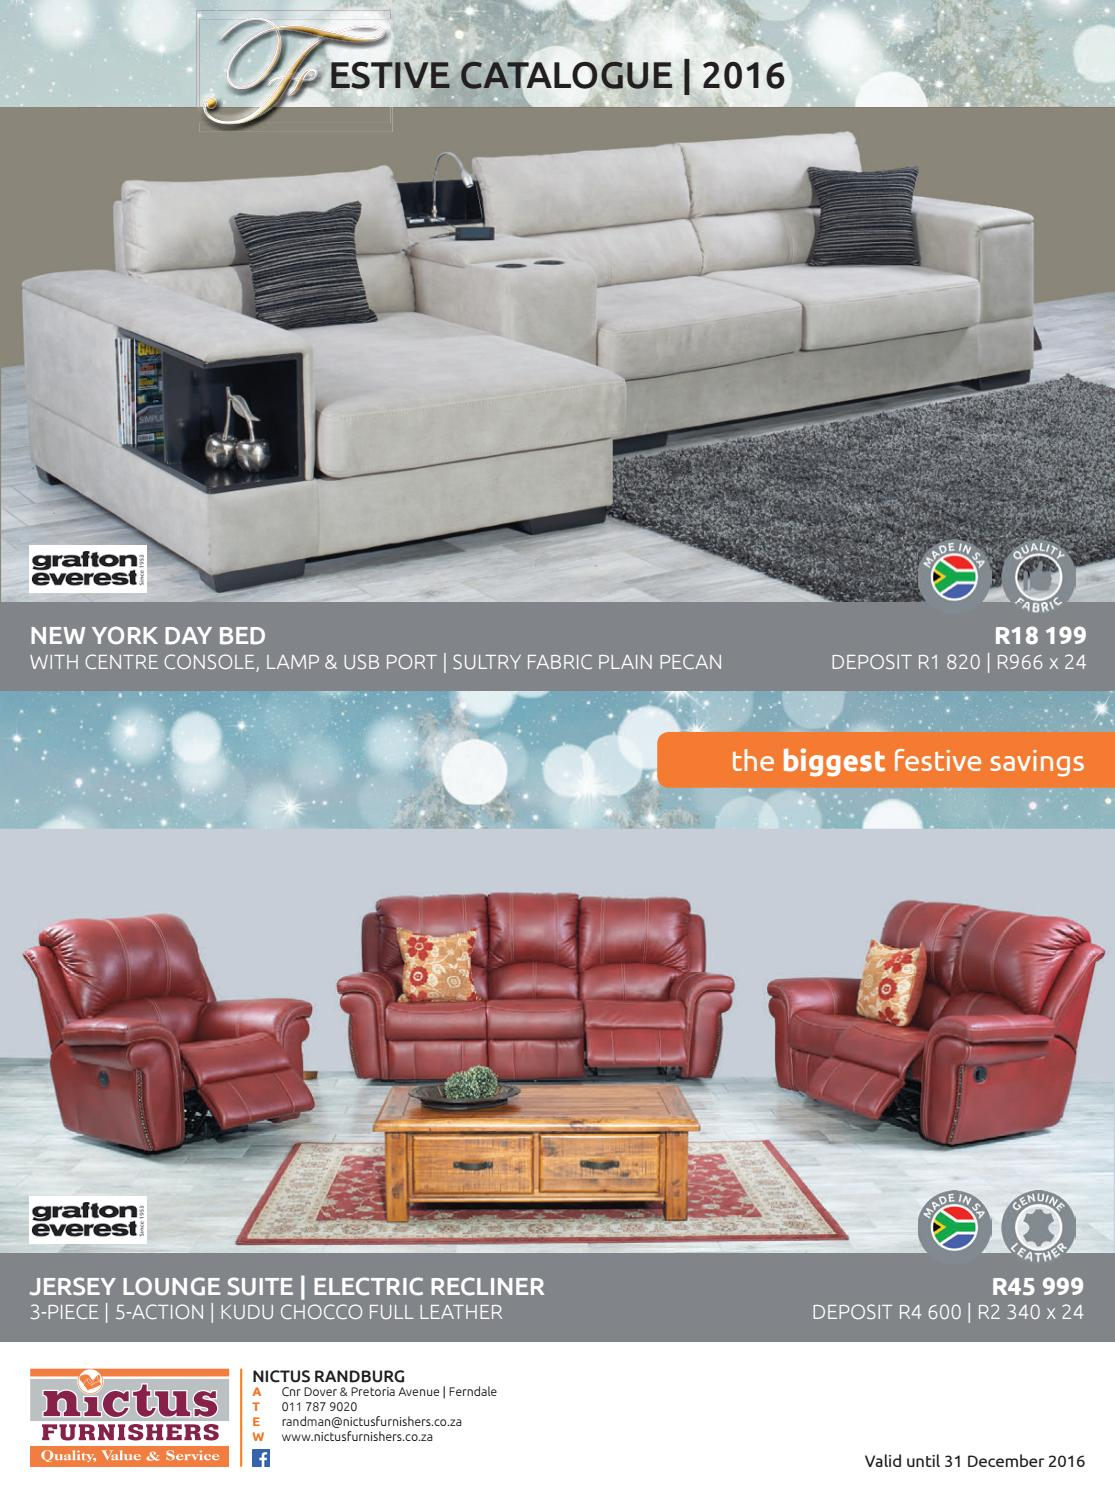 recliner chair bed your covers inc nictus gauteng festive catalogue 2016 by furnishers - issuu